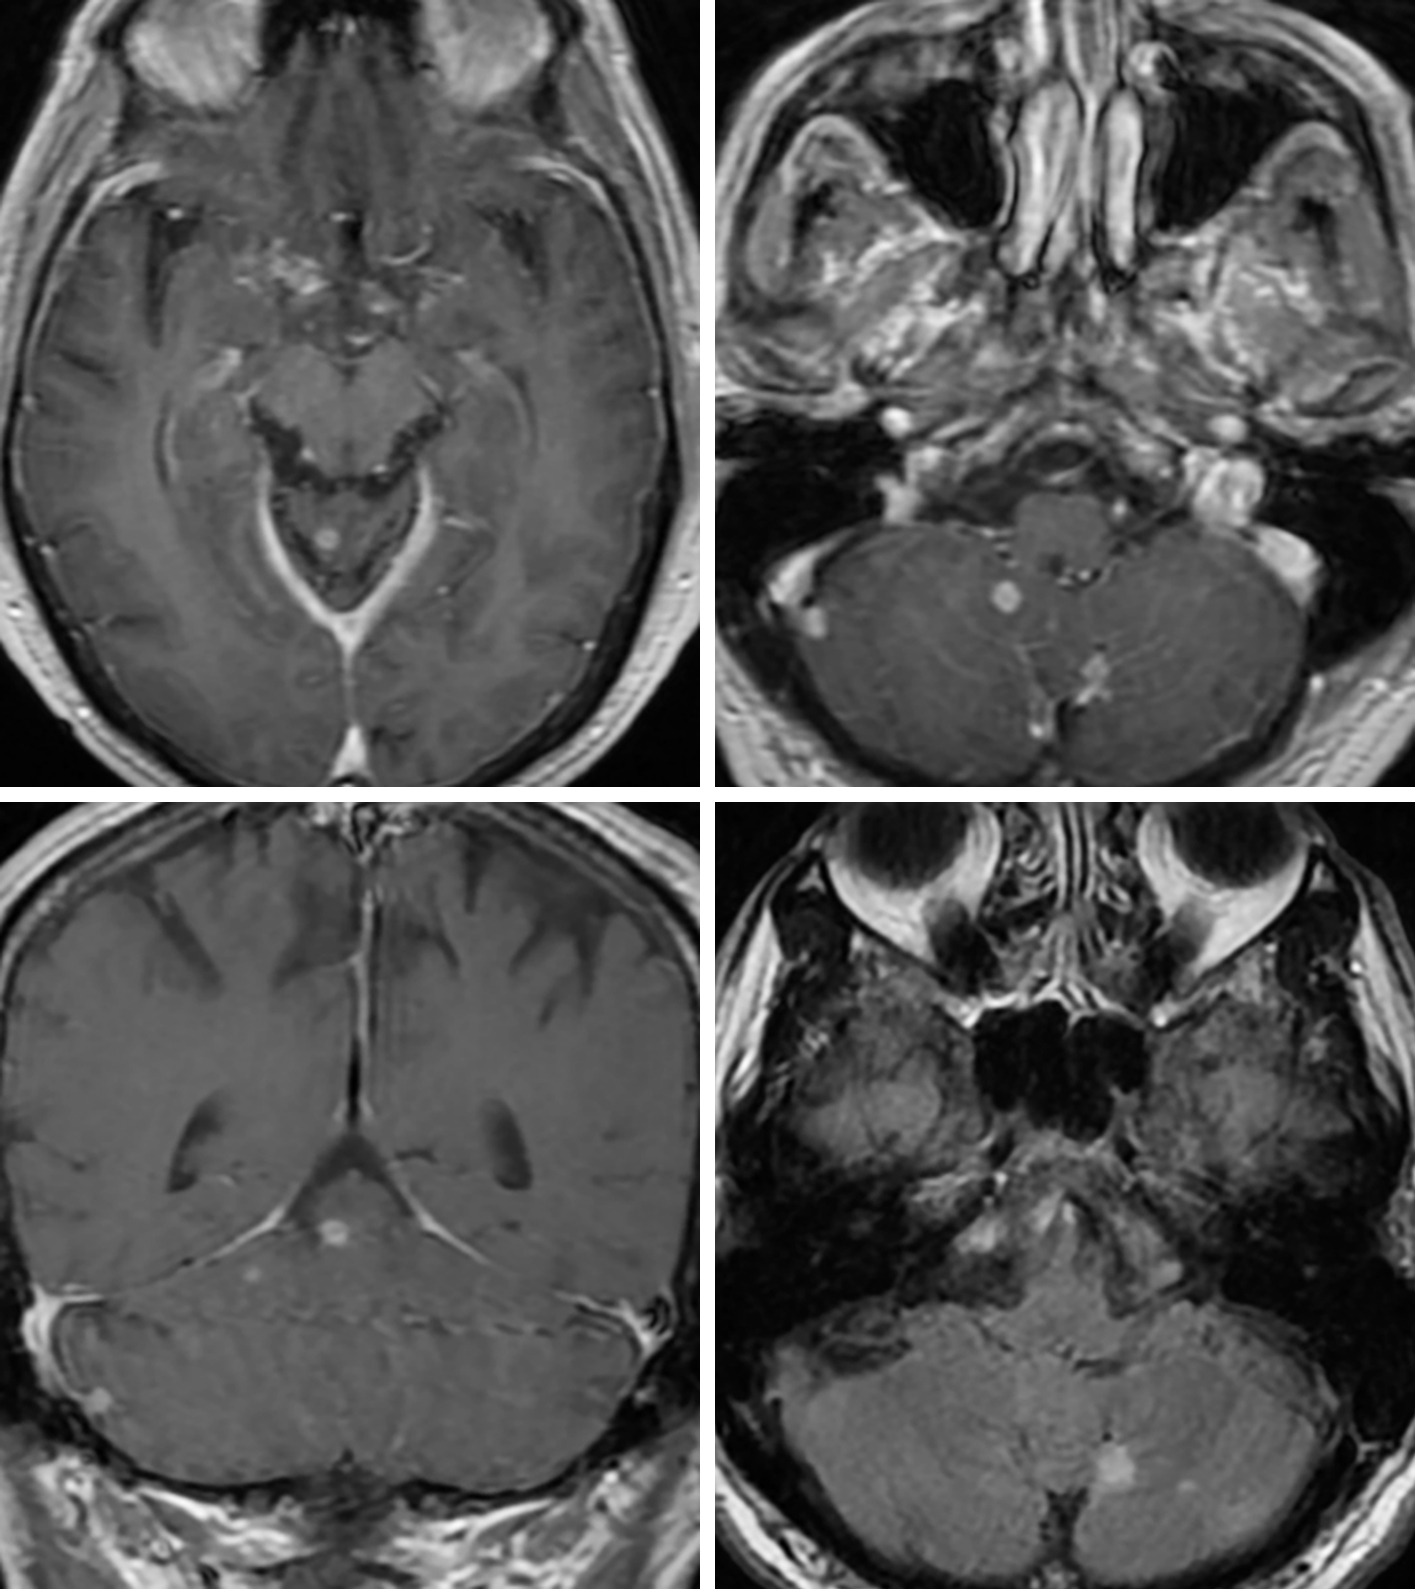 Figure 2: Axial (top left and top right) and coronal (bottom left) contrast-enhanced T1-weighted images demonstrating numerous tiny enhancing nodules along the basal cisterns and within and along the cerebellum reflecting leptomeningeal disease and occasional parenchymal abscesses, which are common with coccidiomycosis and can mimic small metastases. (Bottom Right) Axial FLAIR image showing hyperintense local edema associated with small parenchymal cerebellar abscesses.